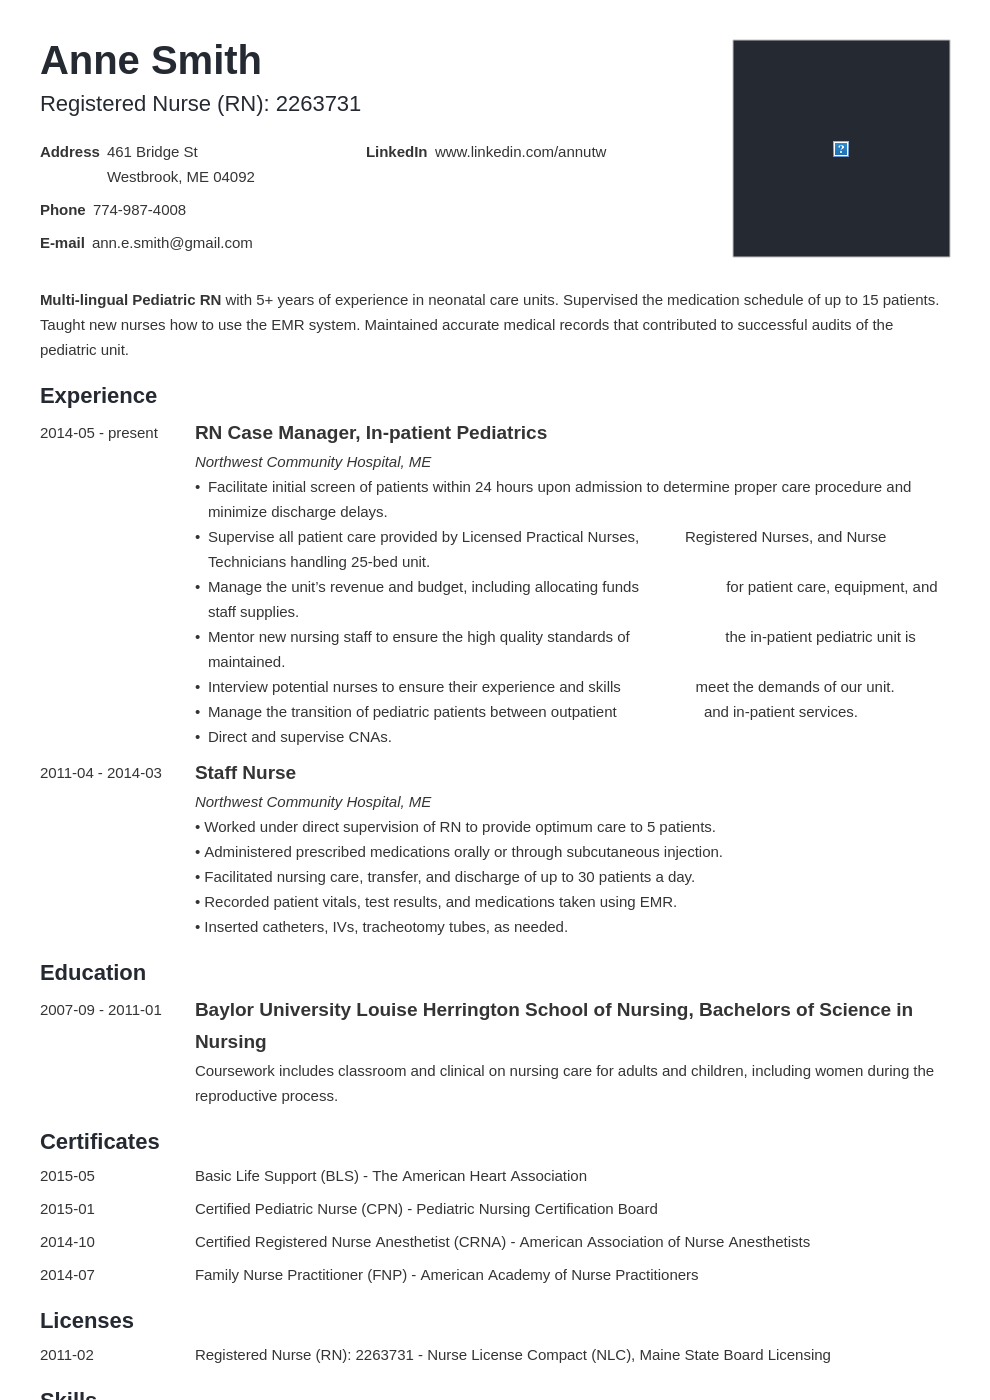 nursing resume examples template minimo in 2020 Nursing